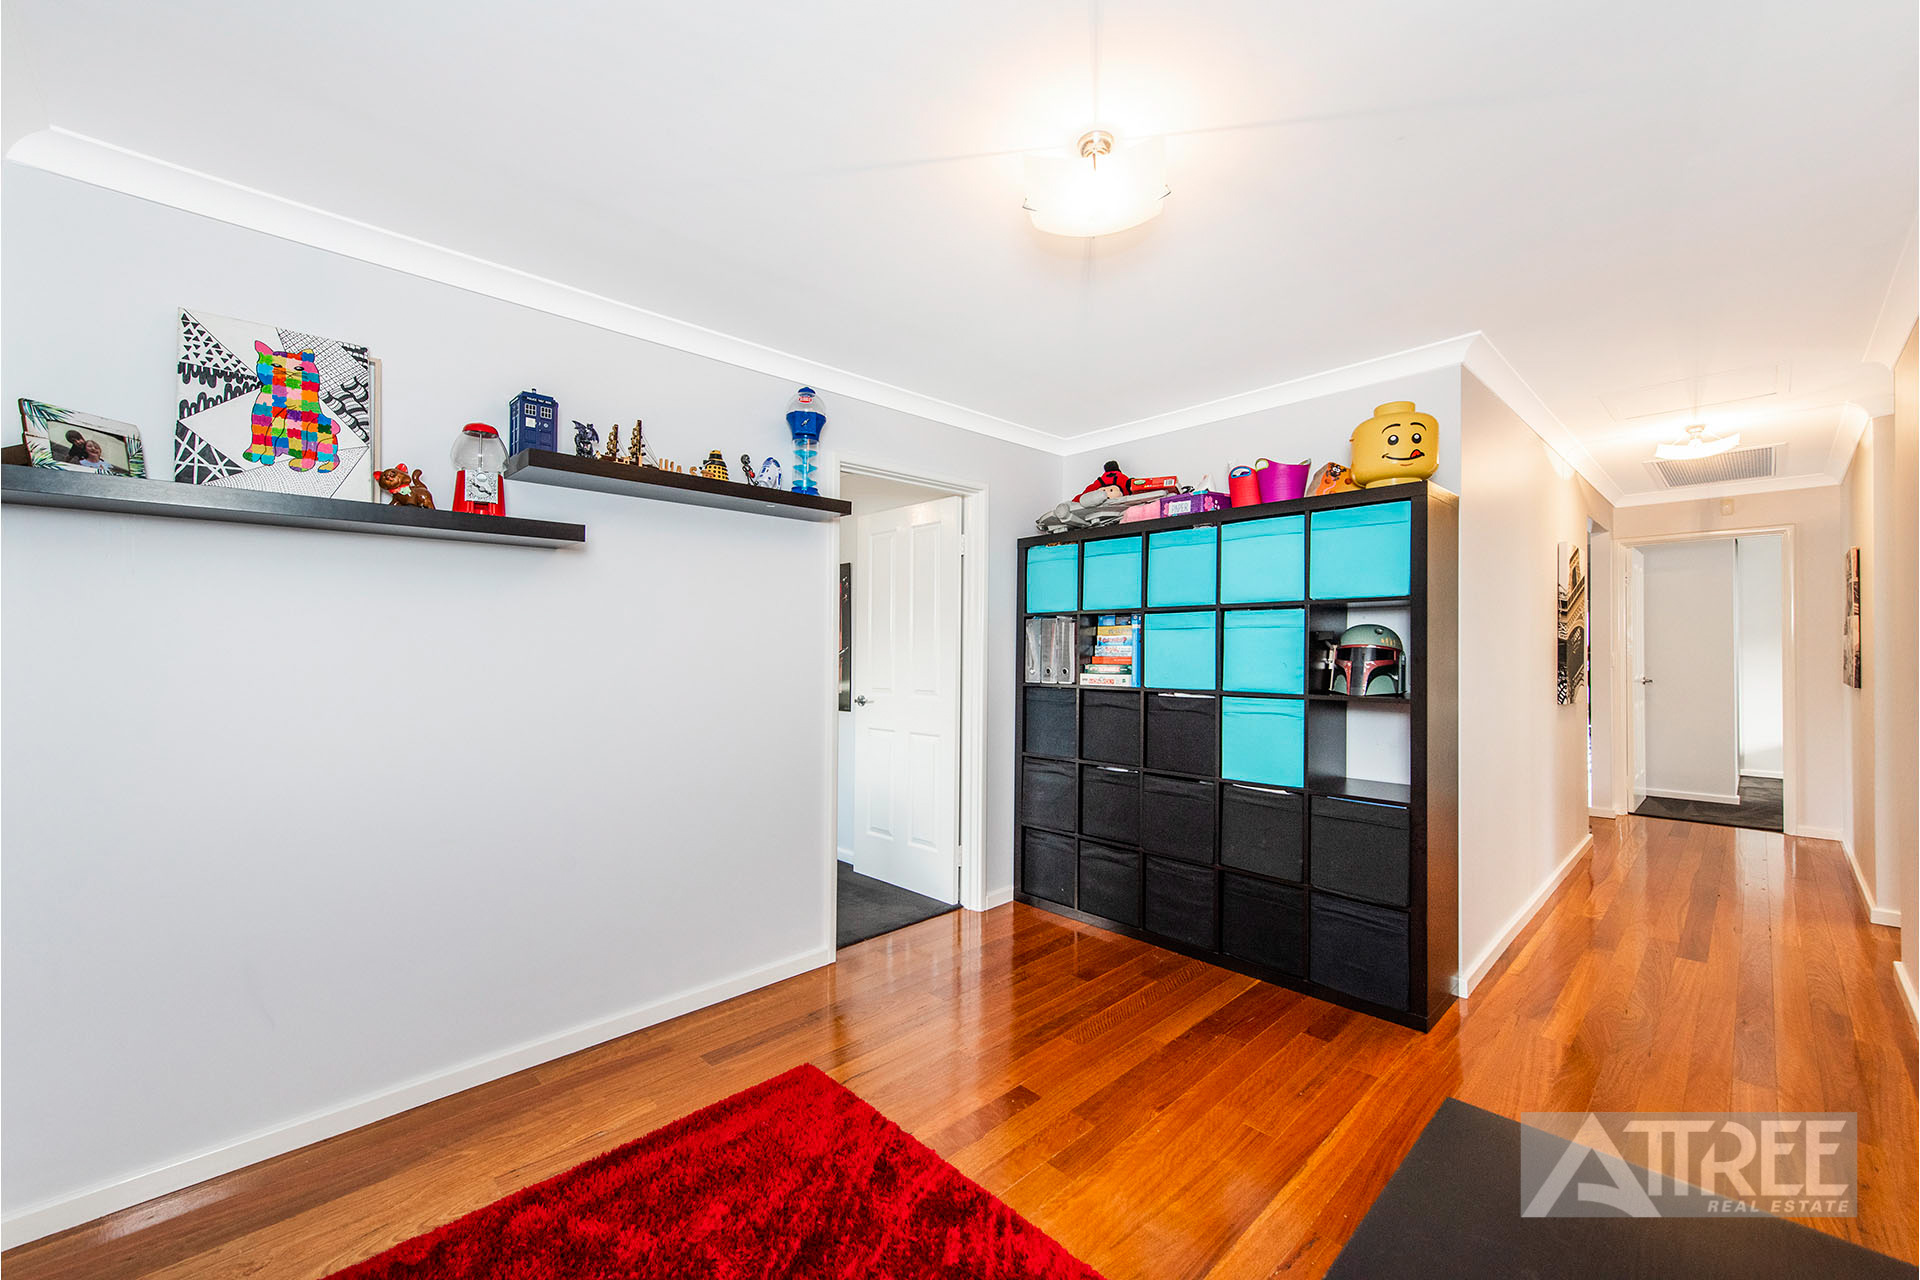 Property for sale in HARRISDALE, 14 Mingara Avenue : Attree Real Estate